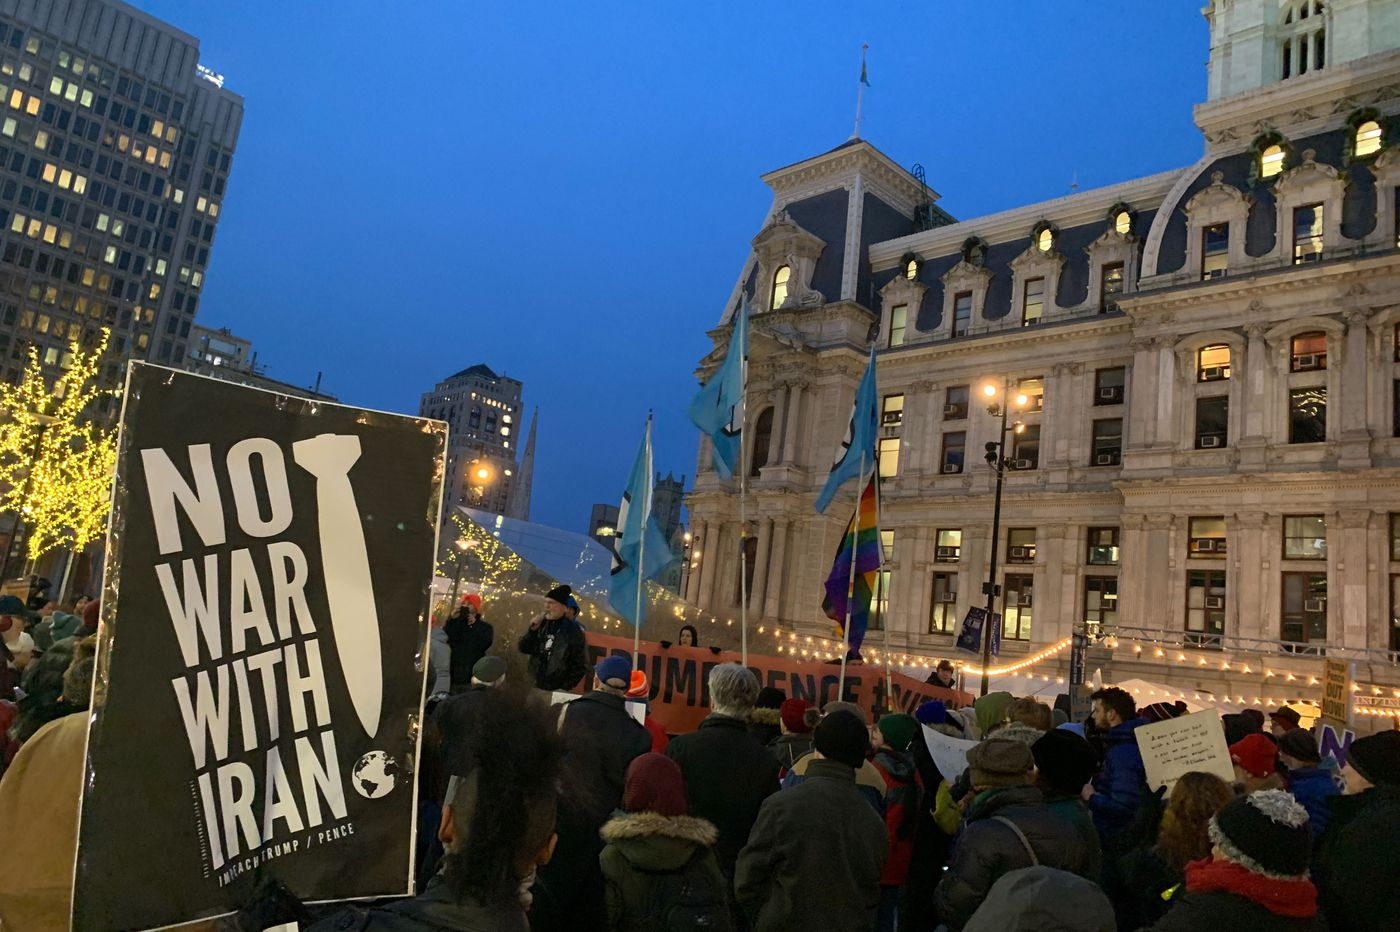 'No War With Iran' protesters march and chant through Center City